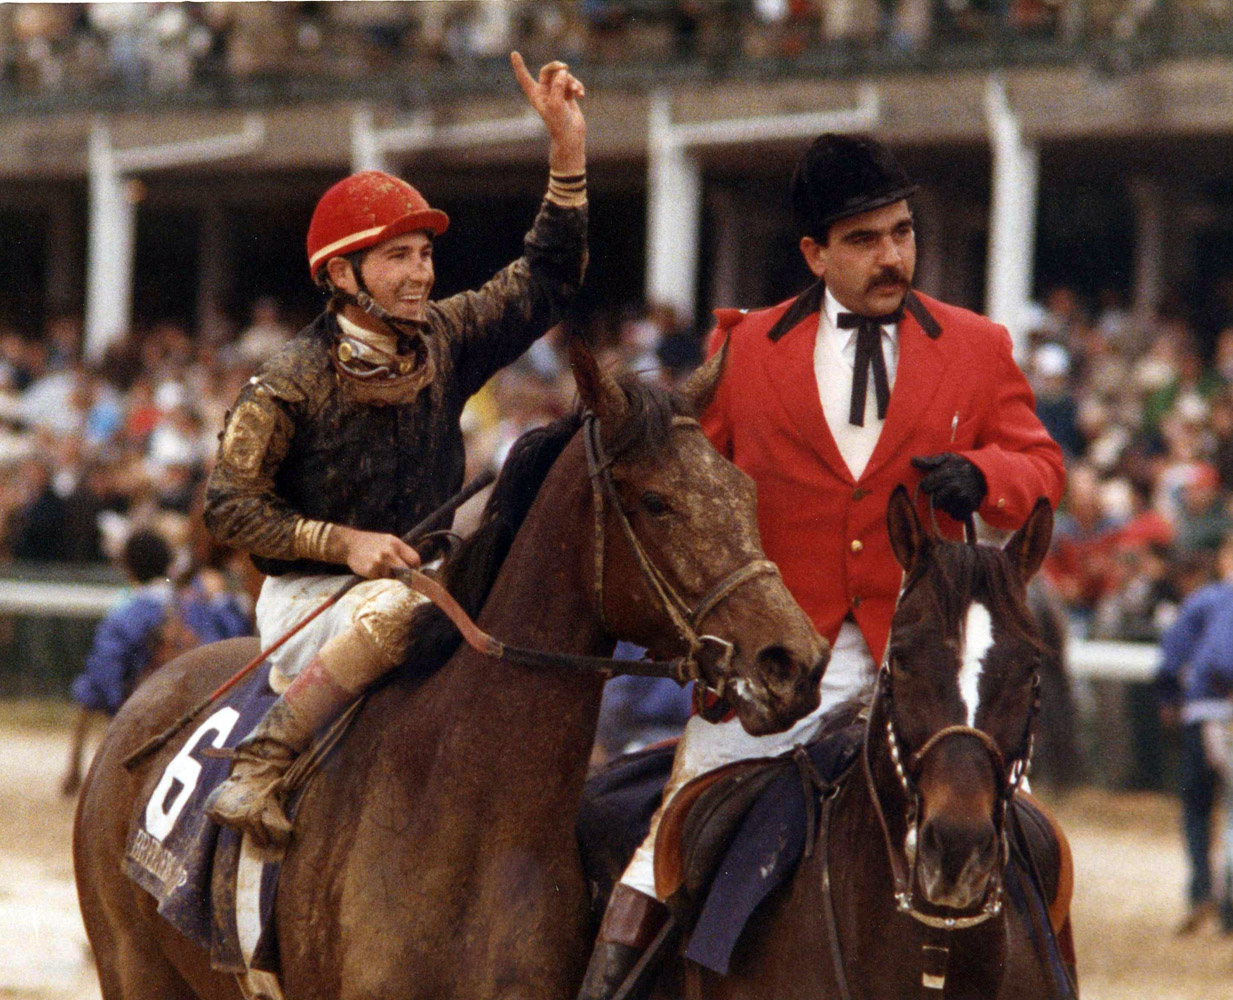 Personal Ensign (Randy Romero up) after winning the 1988 Breeders' Cup Distaff, her final career race (Museum Collection)